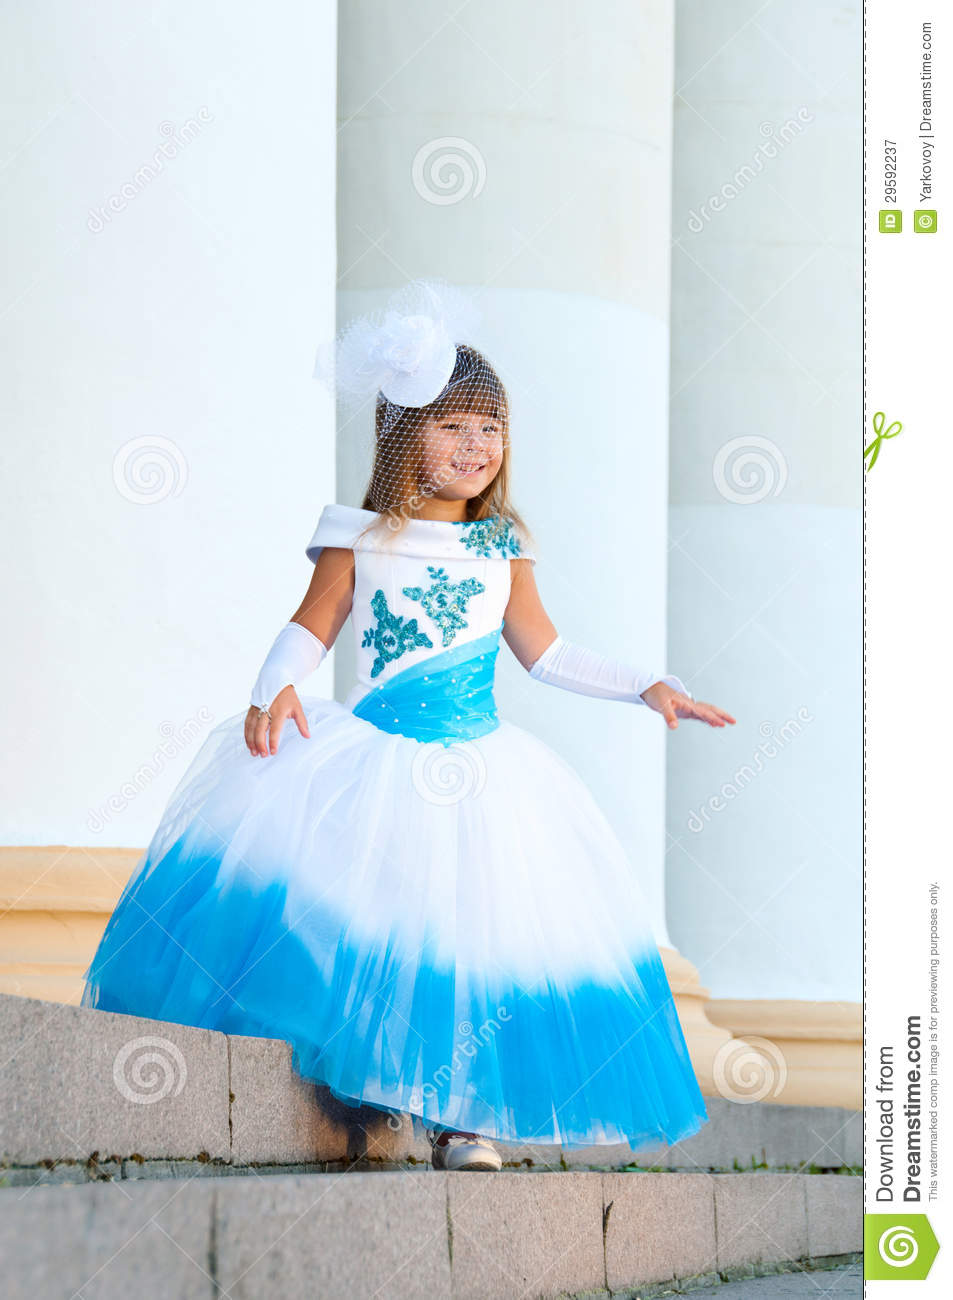 Image Result For Little Bride Dresses